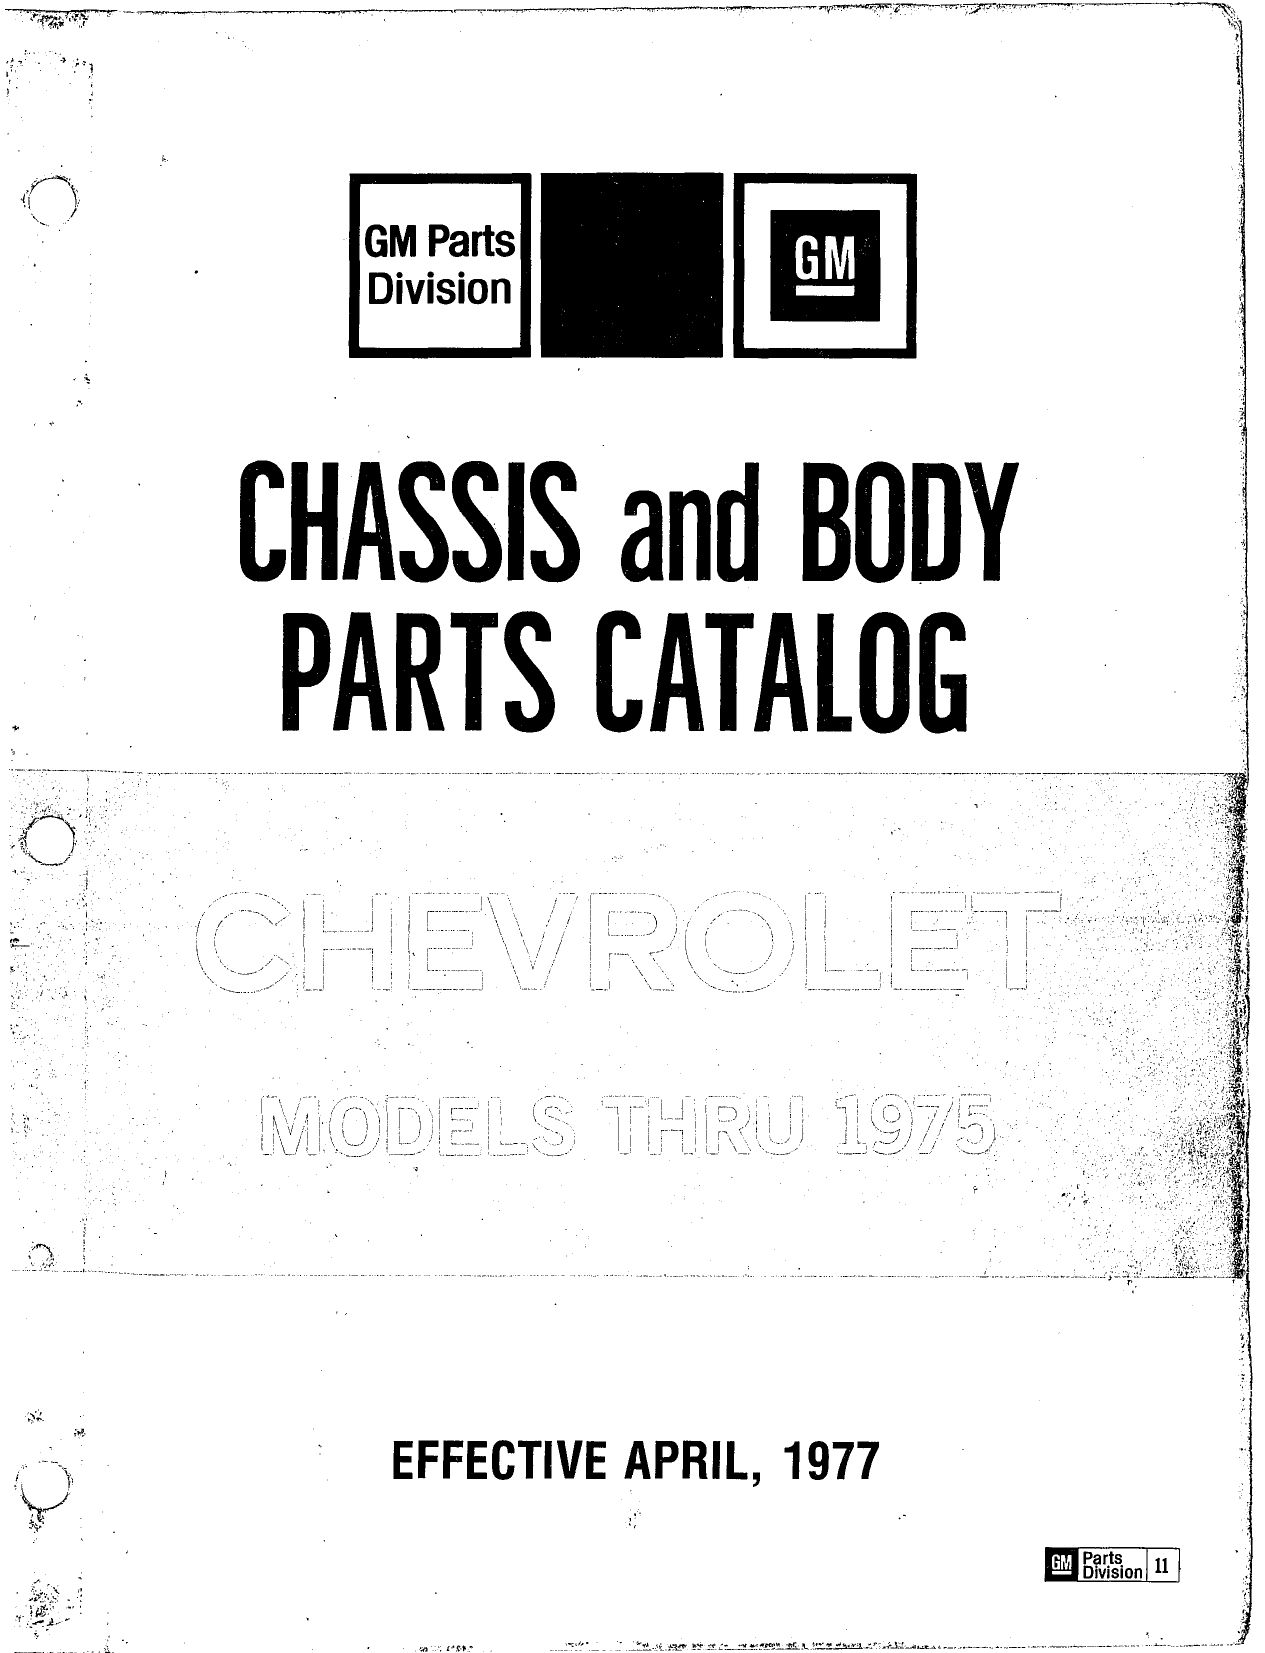 Chassis and Body Parts Catalog P&A 11 April 1977